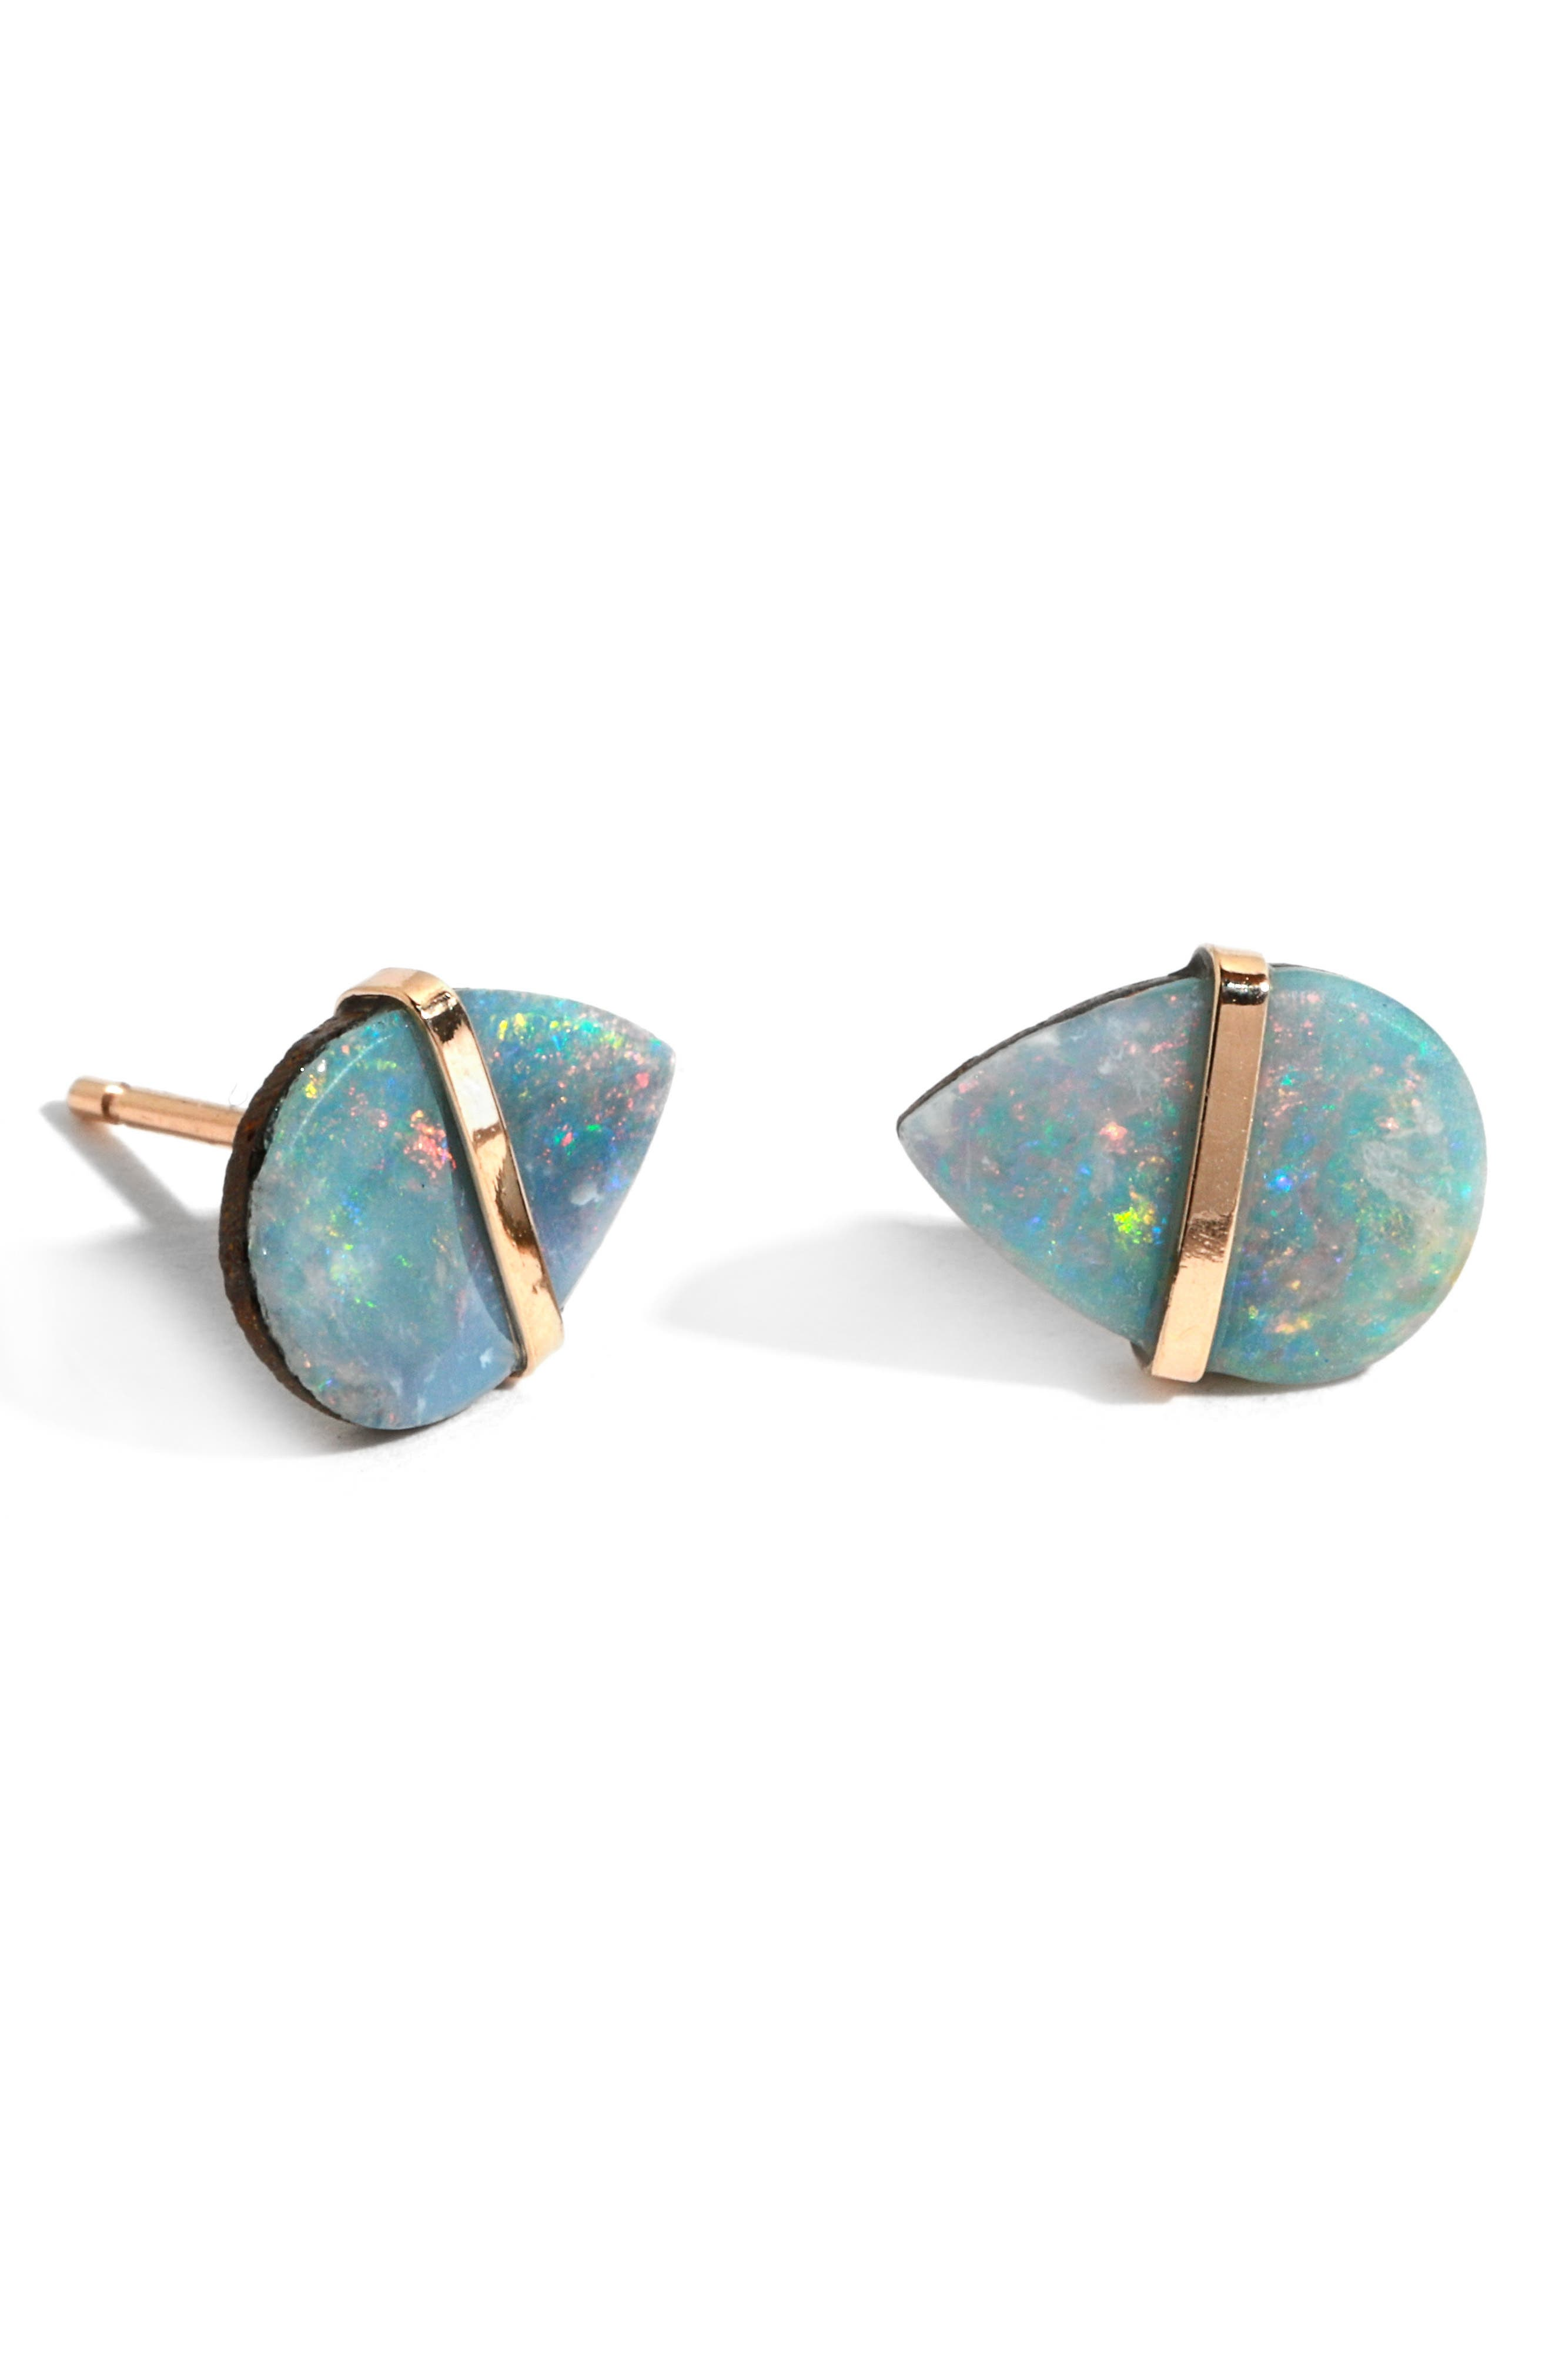 Melissa Joy Manning Semiprecious Stone Stud Earrings